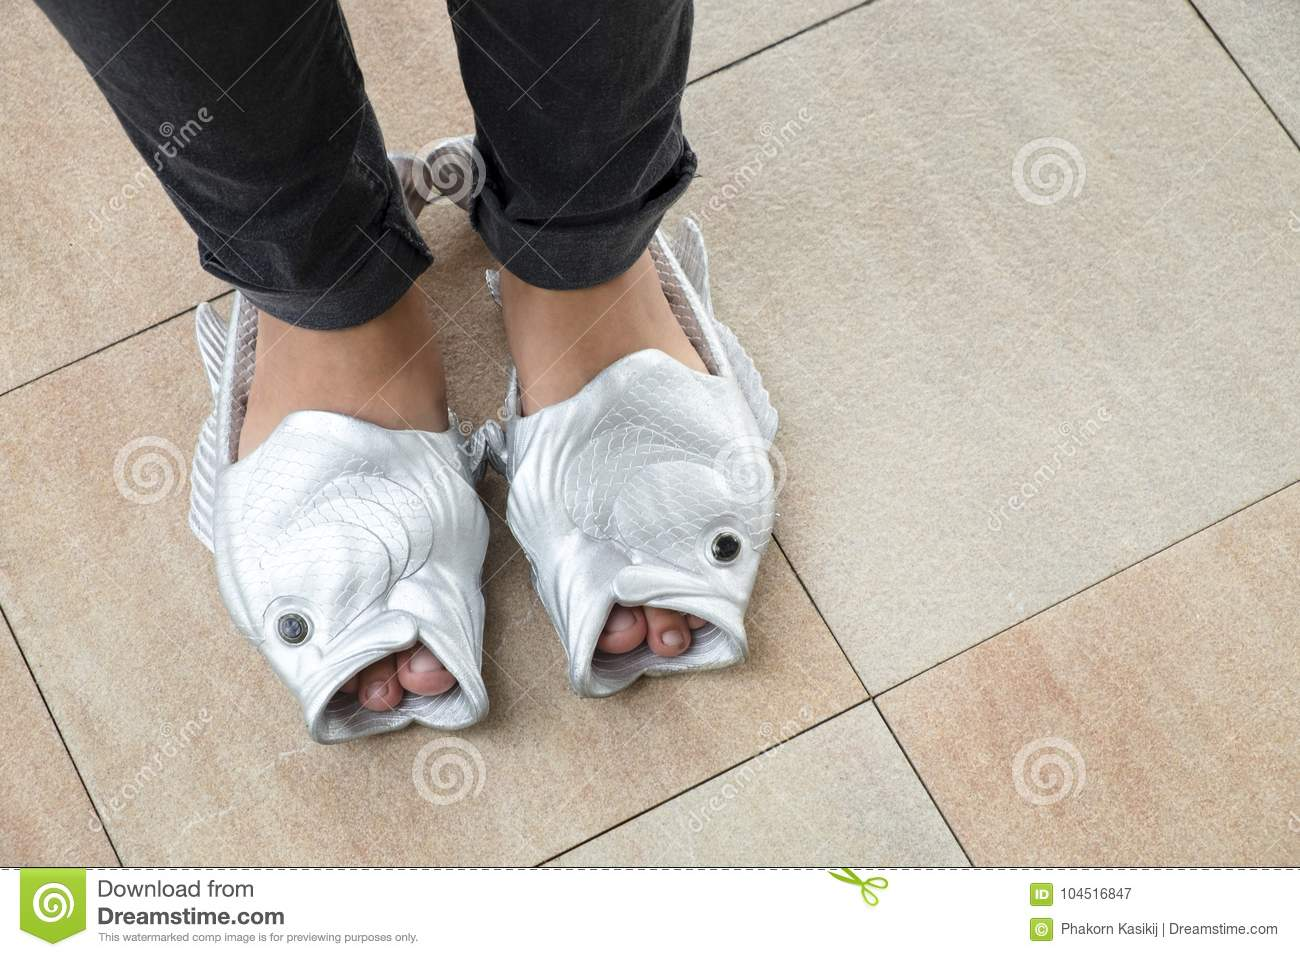 Female Teenager With A Weird Fish Sandal Girls New Style Fashion